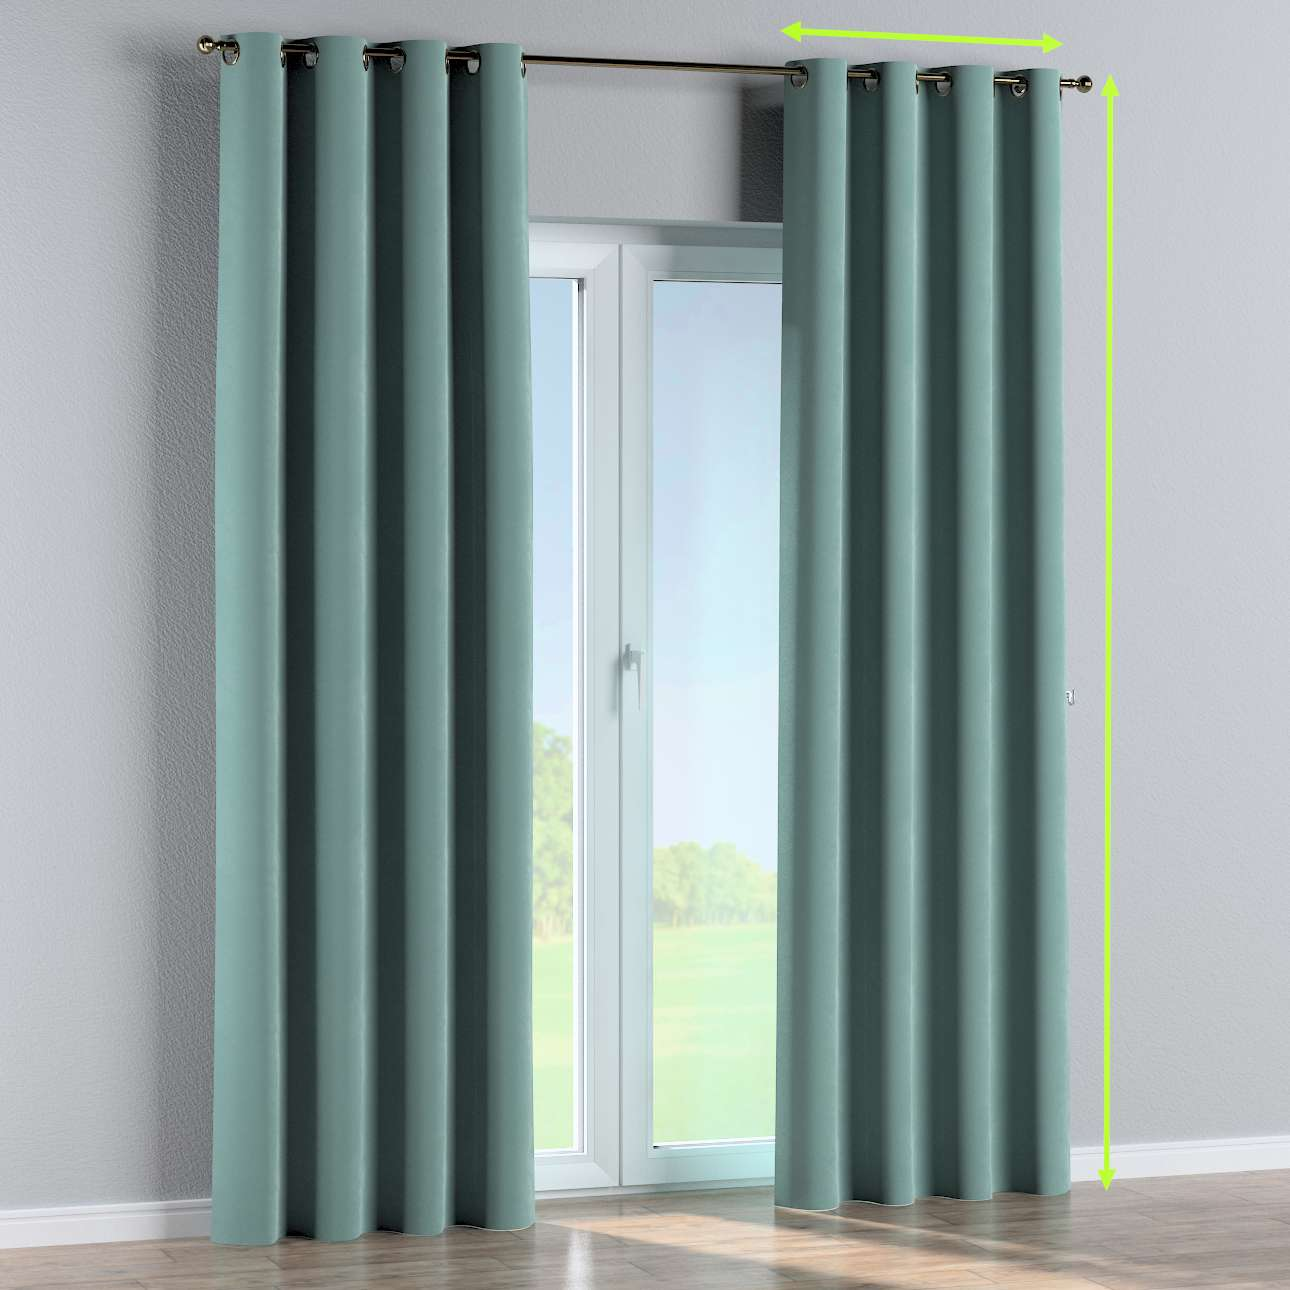 Eyelet curtains in collection Velvet, fabric: 704-18